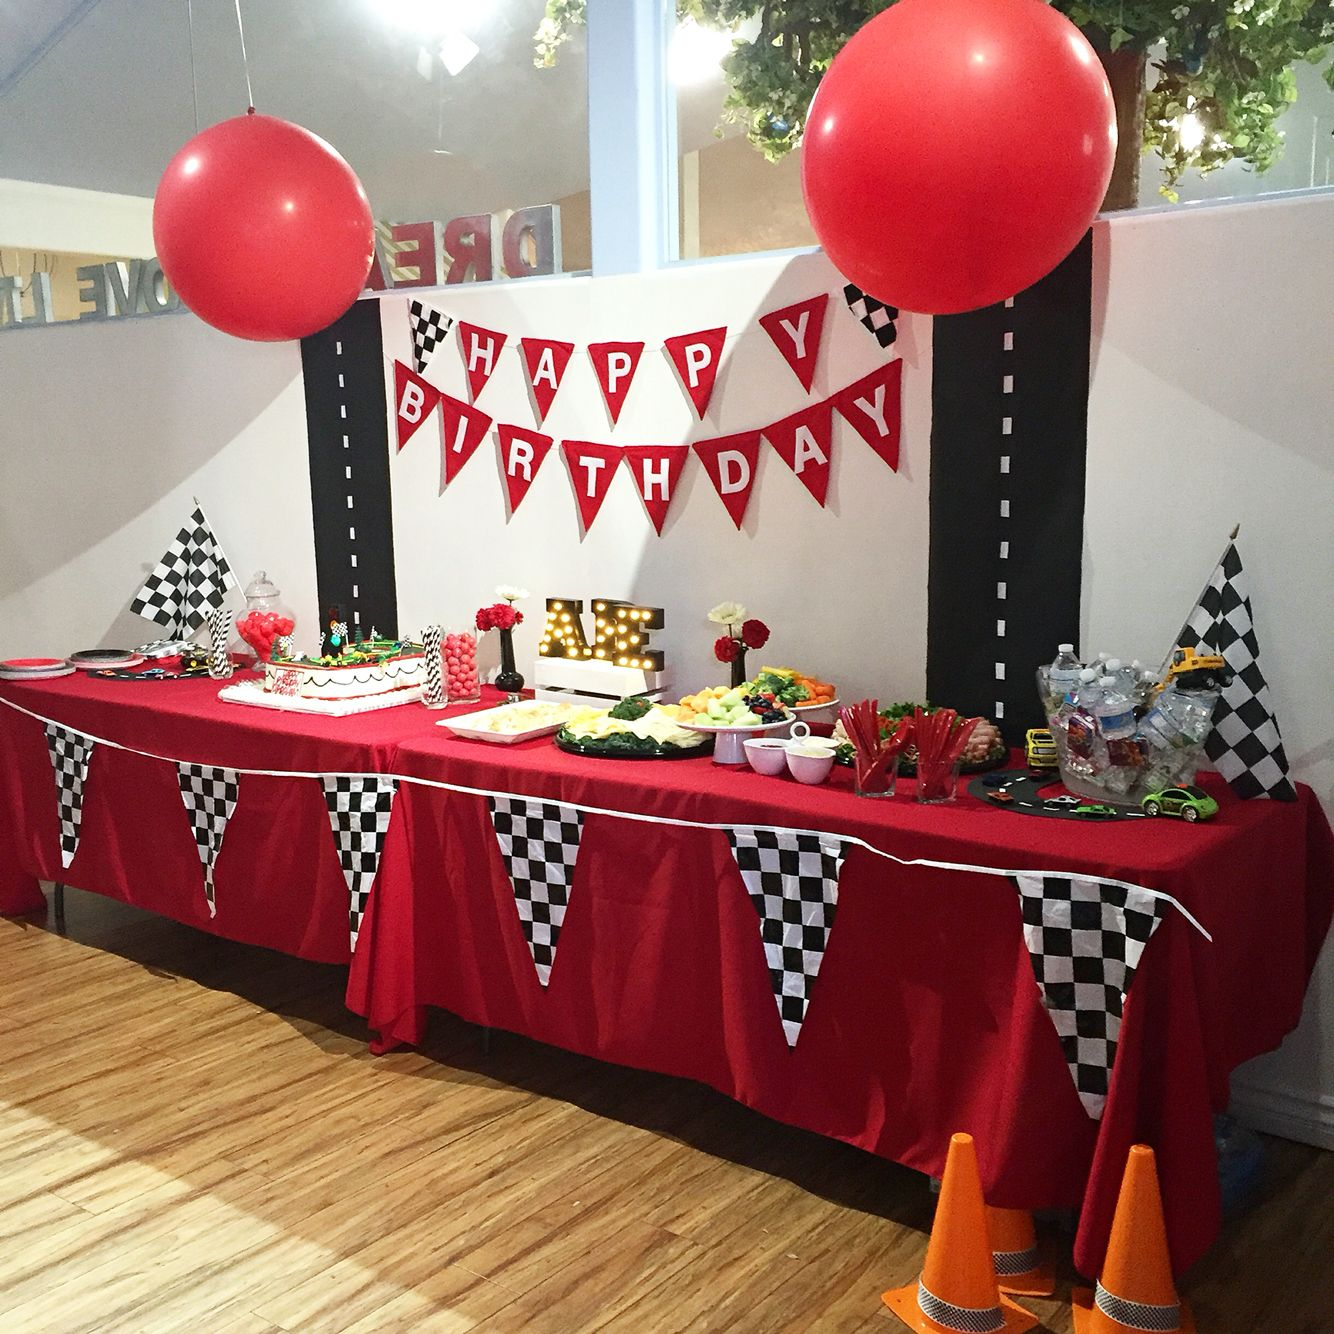 Cars party table decor disney cars theme pinterest for Table decoration ideas for parties